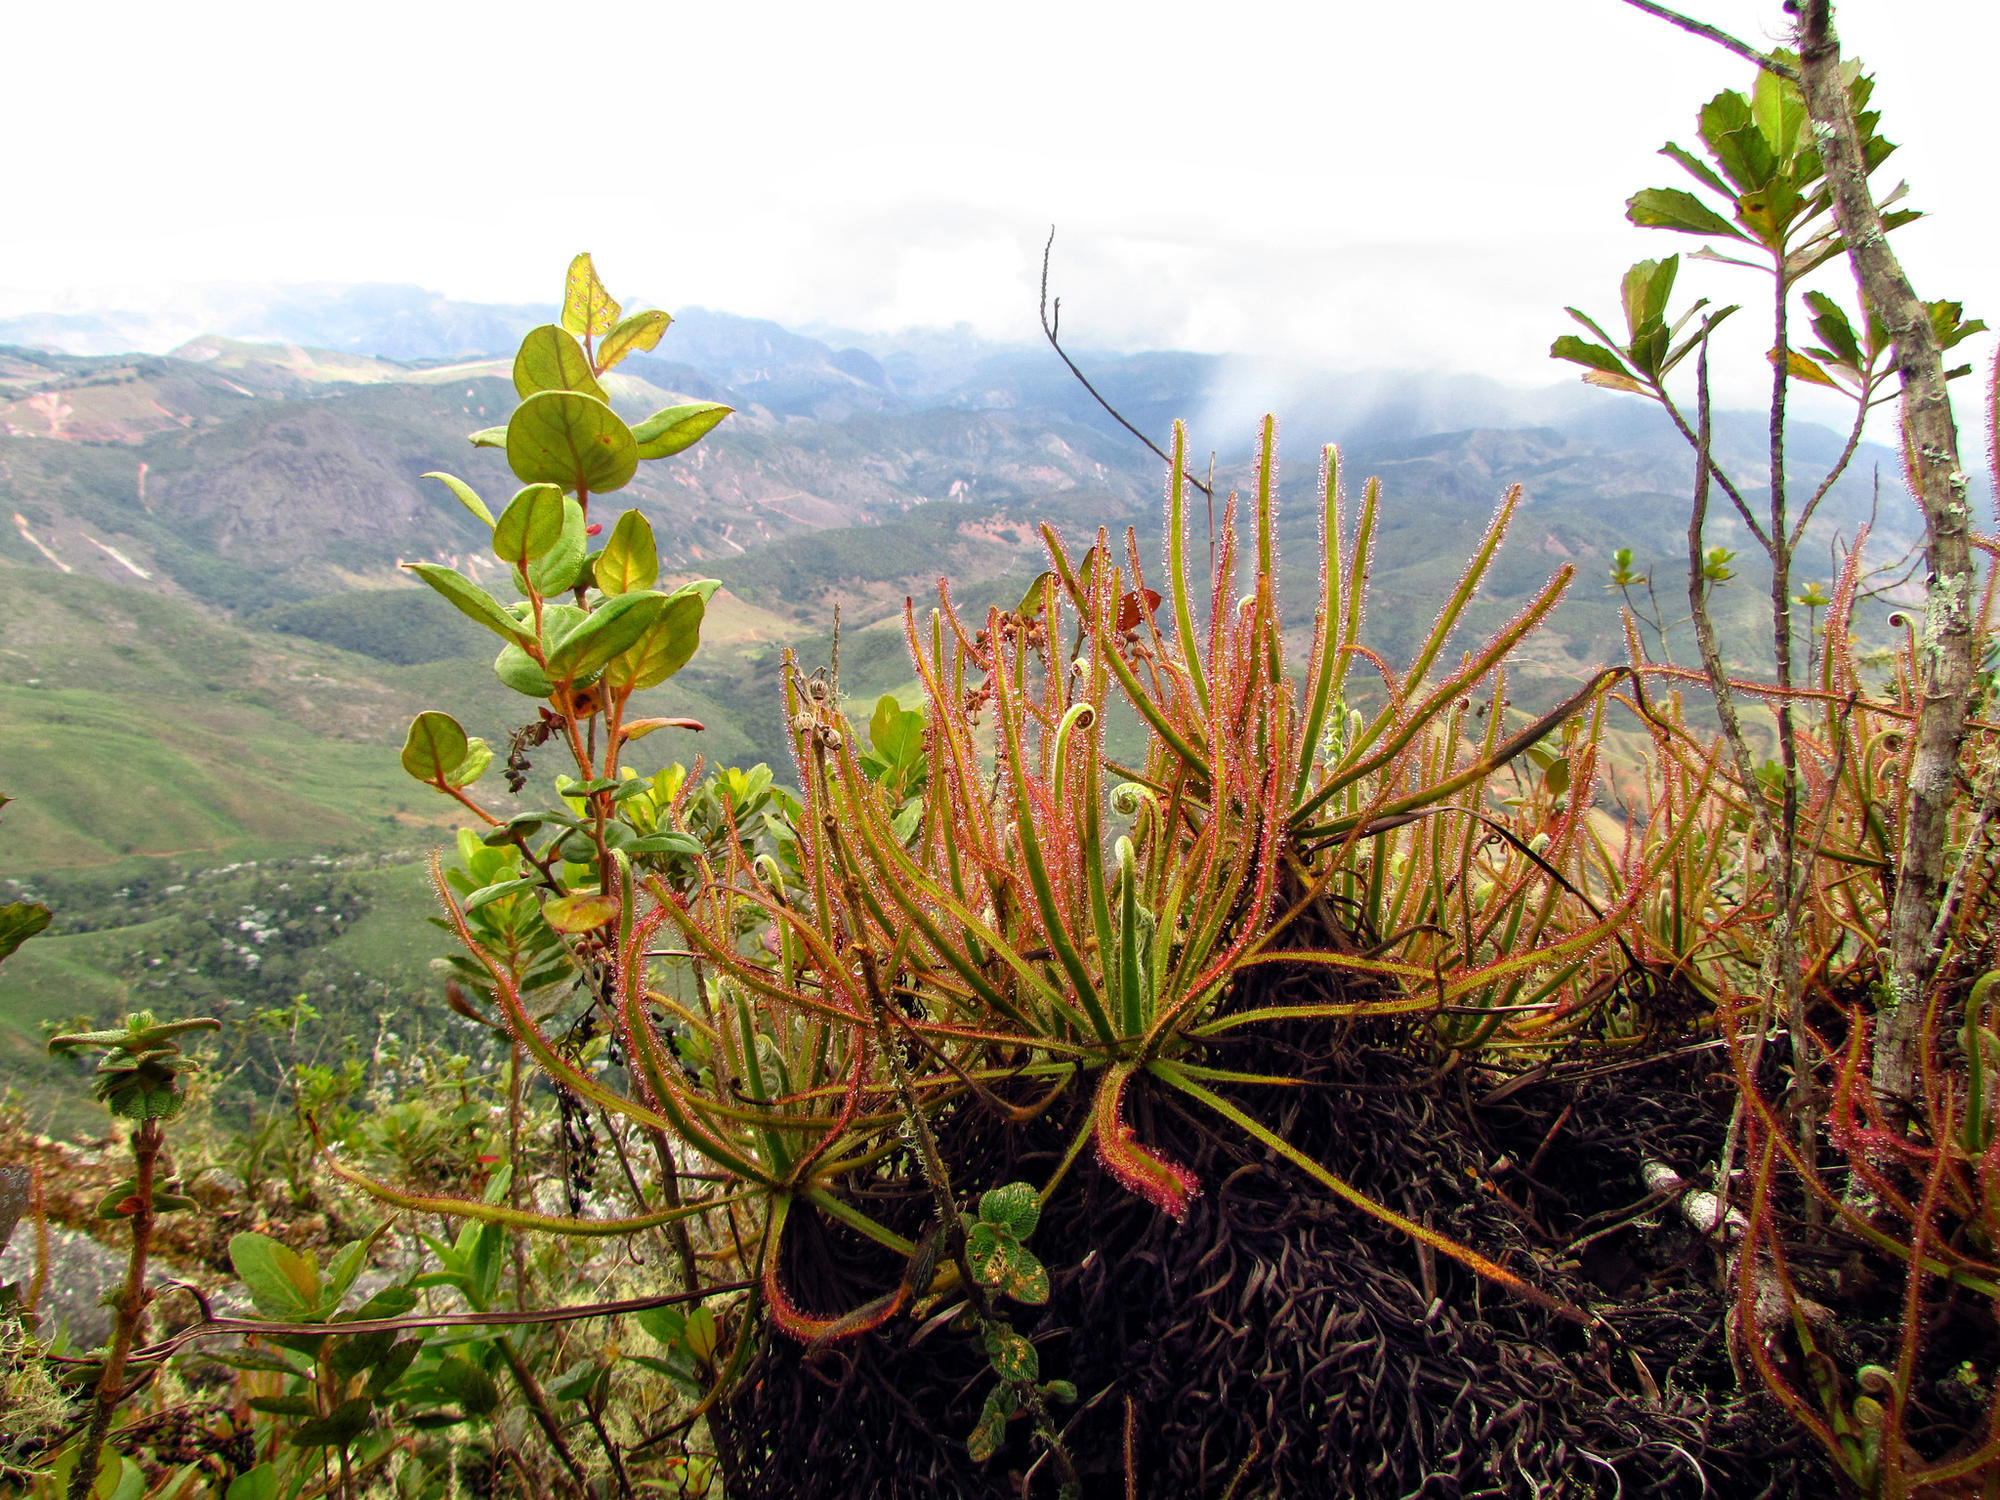 The carniverous giant sundew with other plants in Brazil.